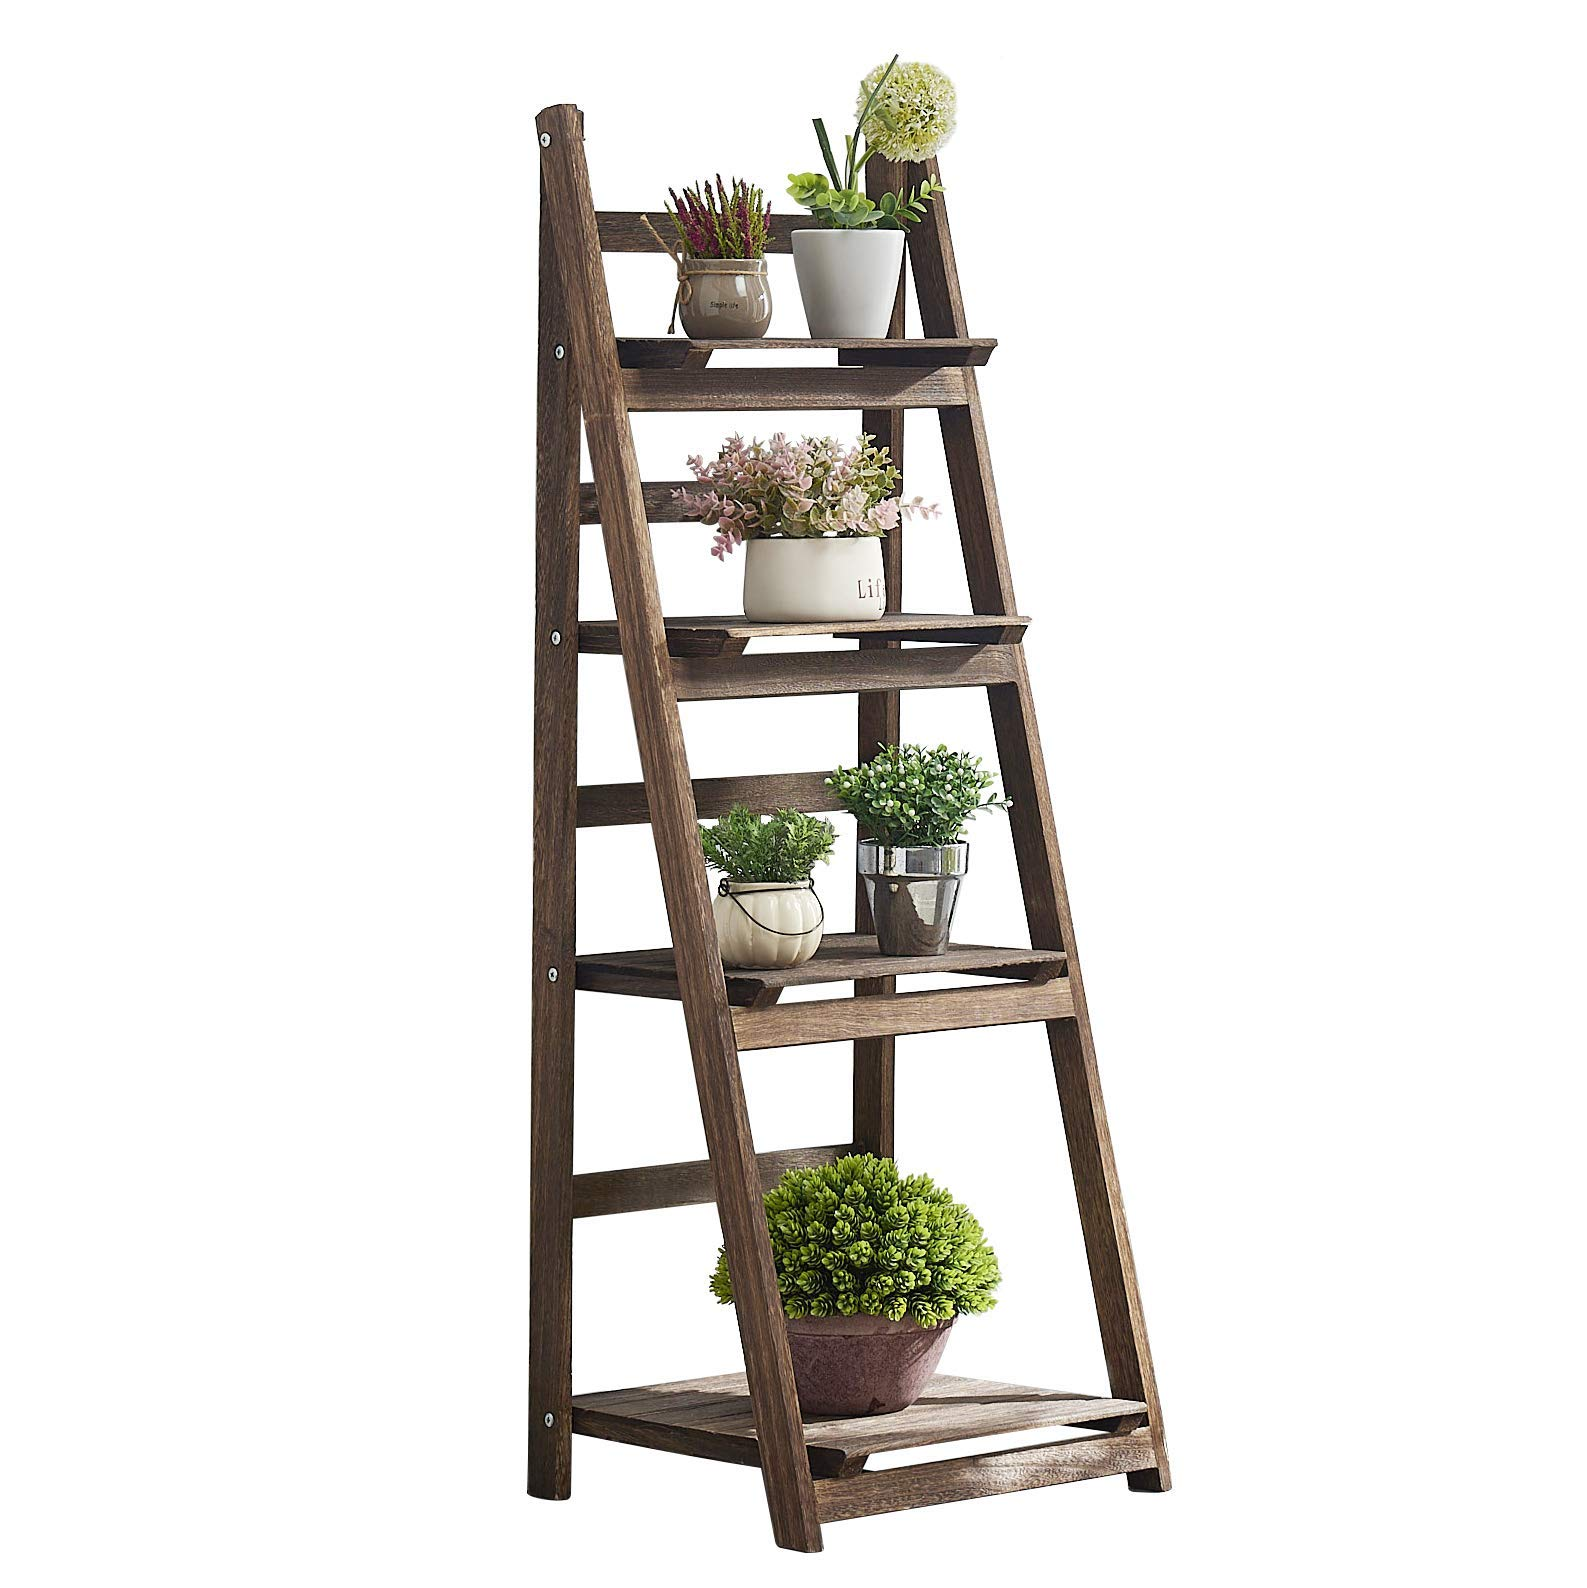 """RHF 44"""" Foldable Plant Shelf,Plant Stand,Indoor Flower Pot Holder,Flower Pot Ladder,Folding A Frame Display Shelf,Patio Rustic Wood Stand with Shelves,4 Tier Stand Outdoor,Pot Rack, Free Standing"""